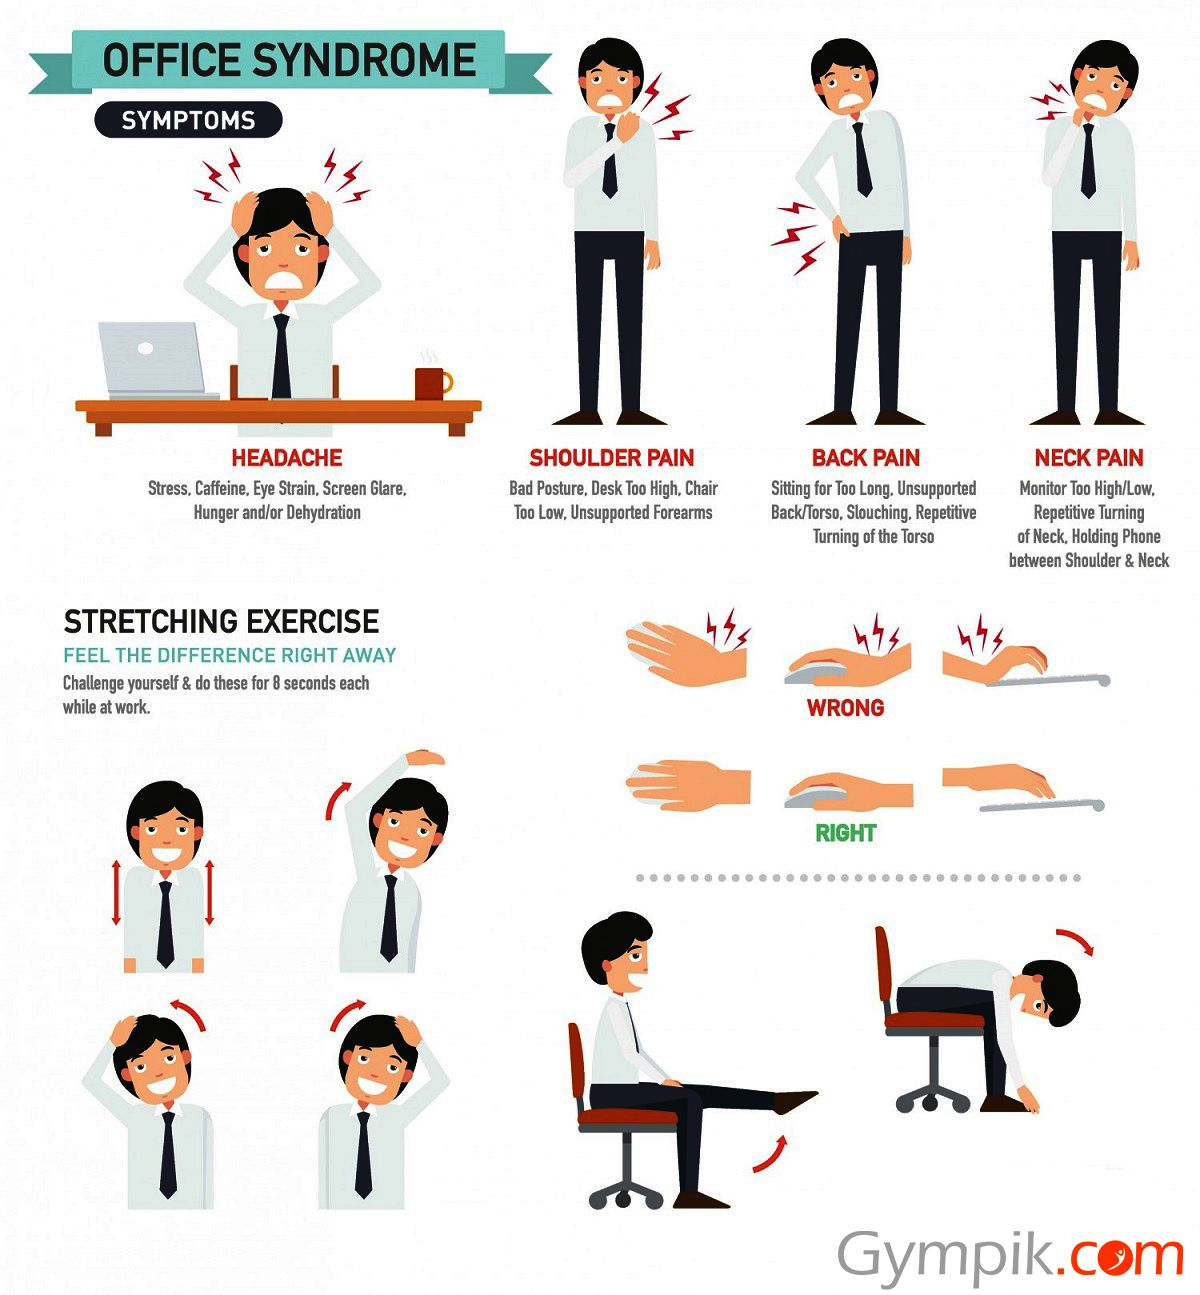 Here are some simple moves for you to take small breaks